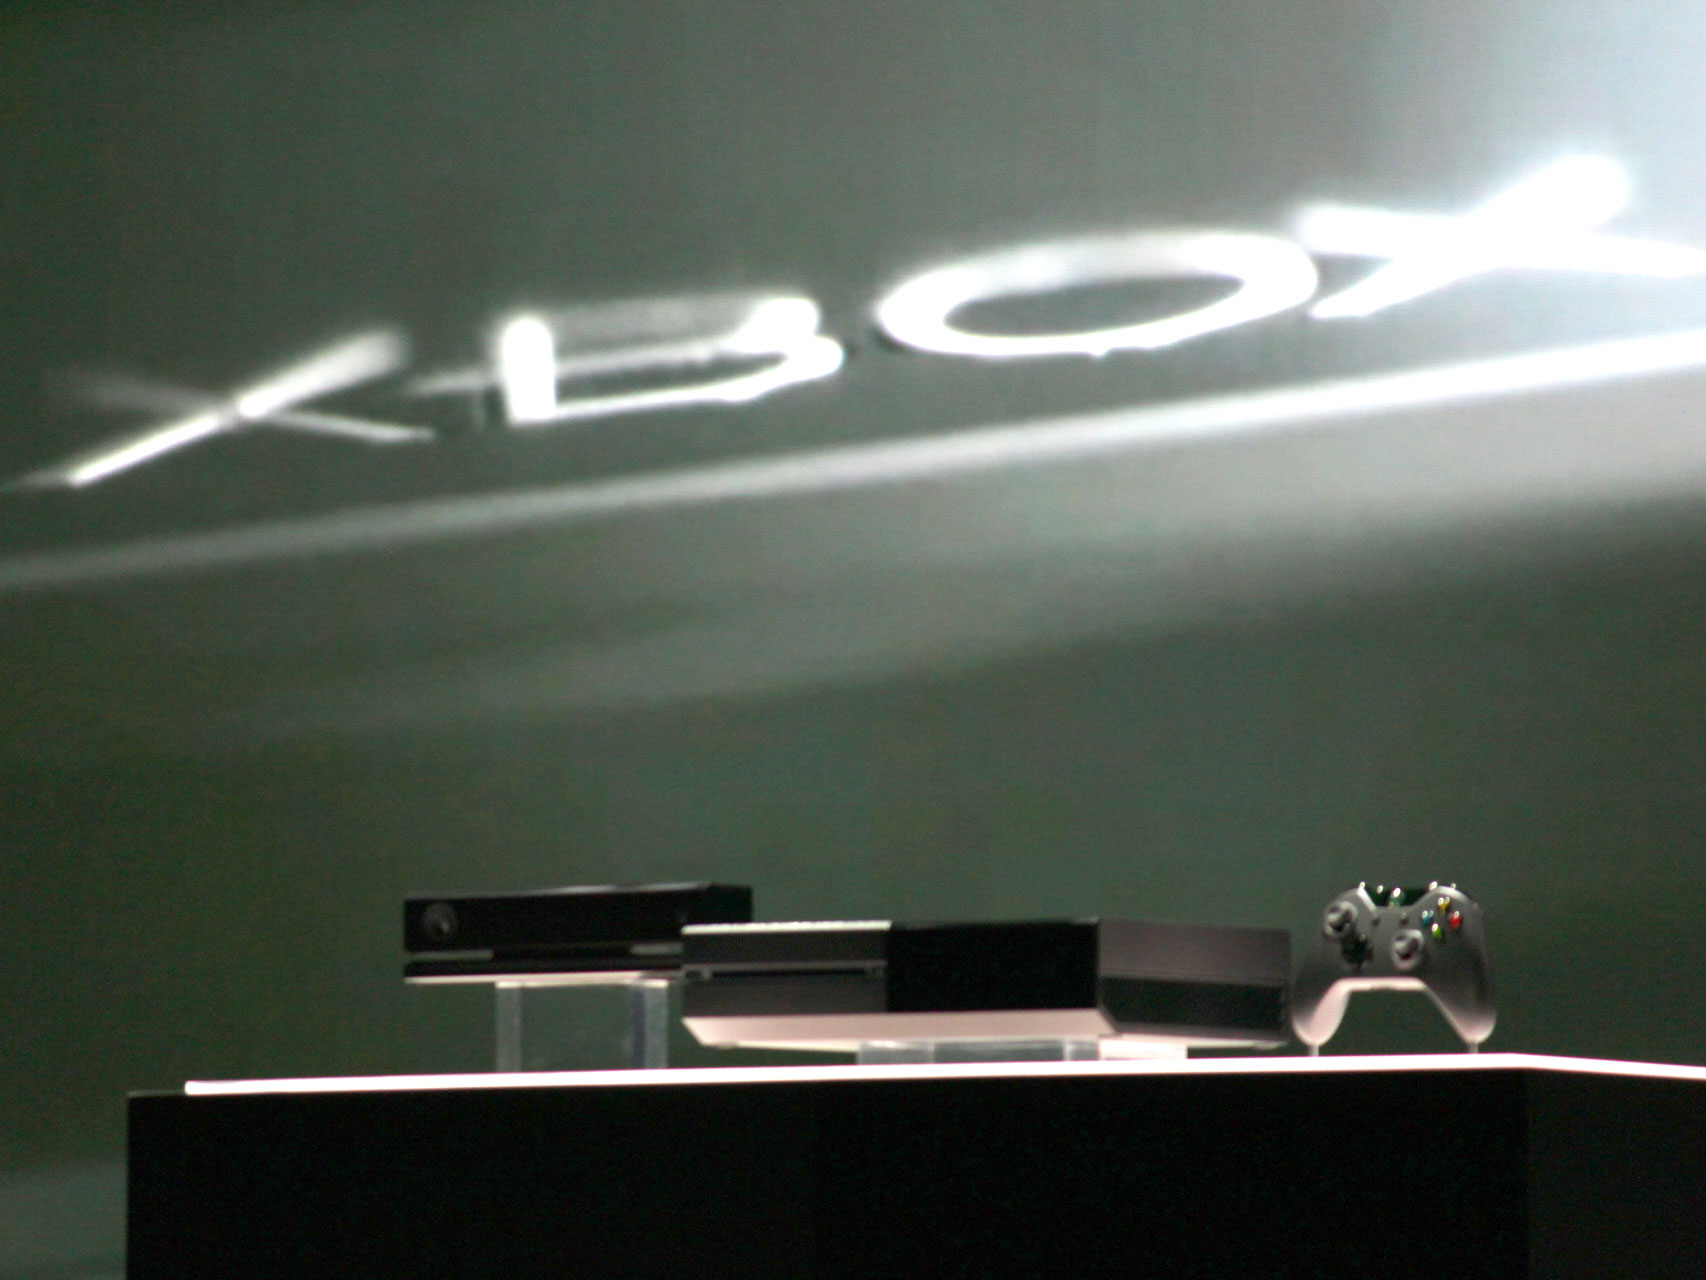 Xbox One with controller and Kinect